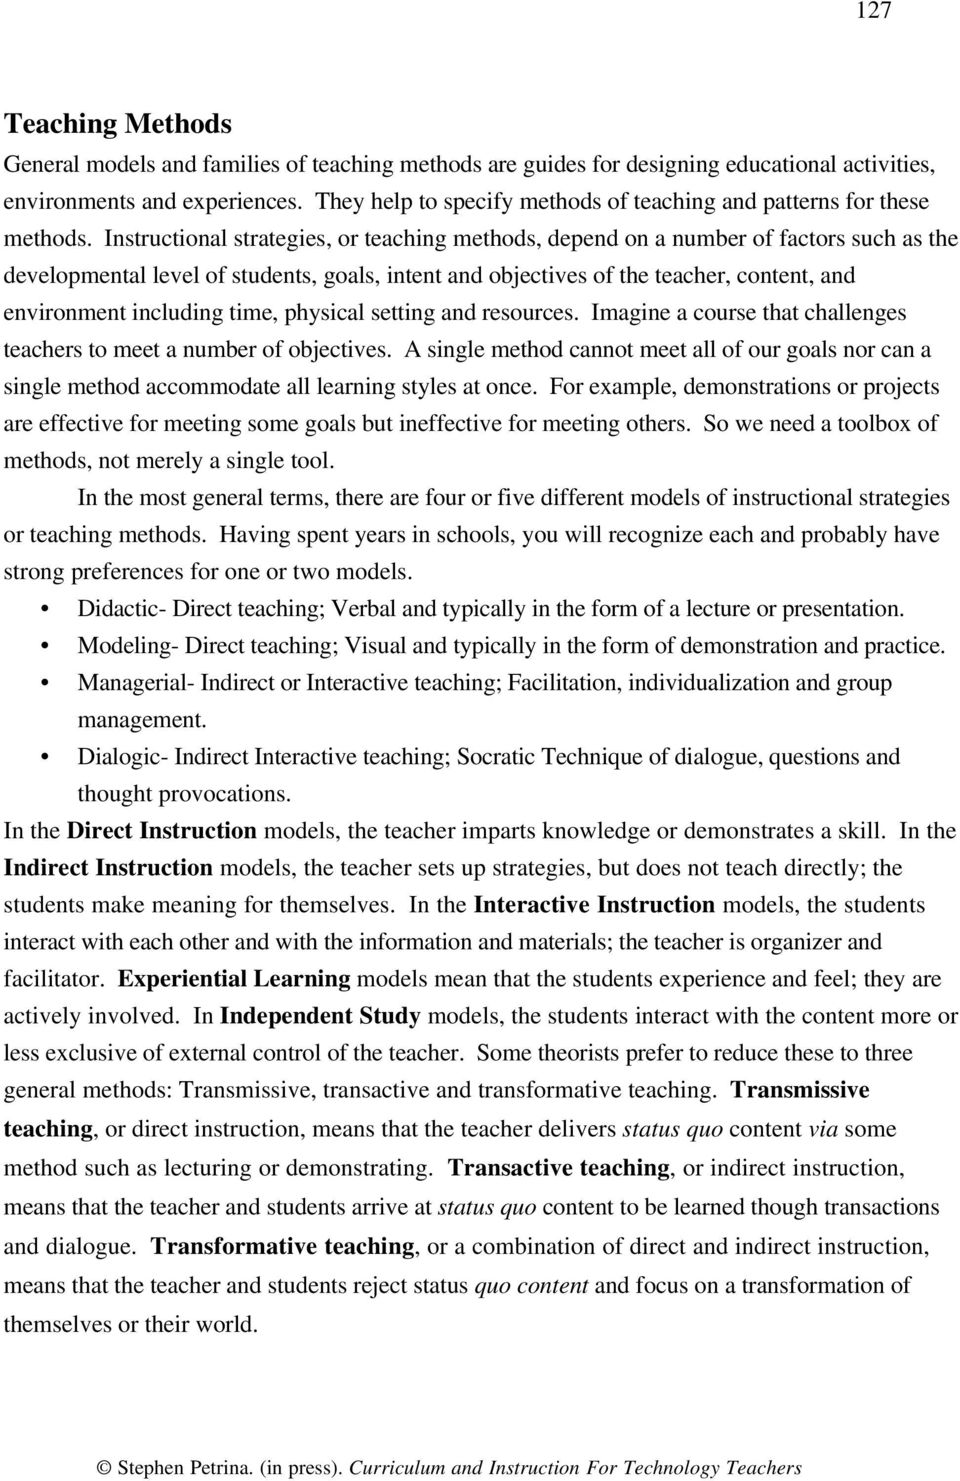 Instructional strategies, or teaching methods, depend on a number of factors such as the developmental level of students, goals, intent and objectives of the teacher, content, and environment